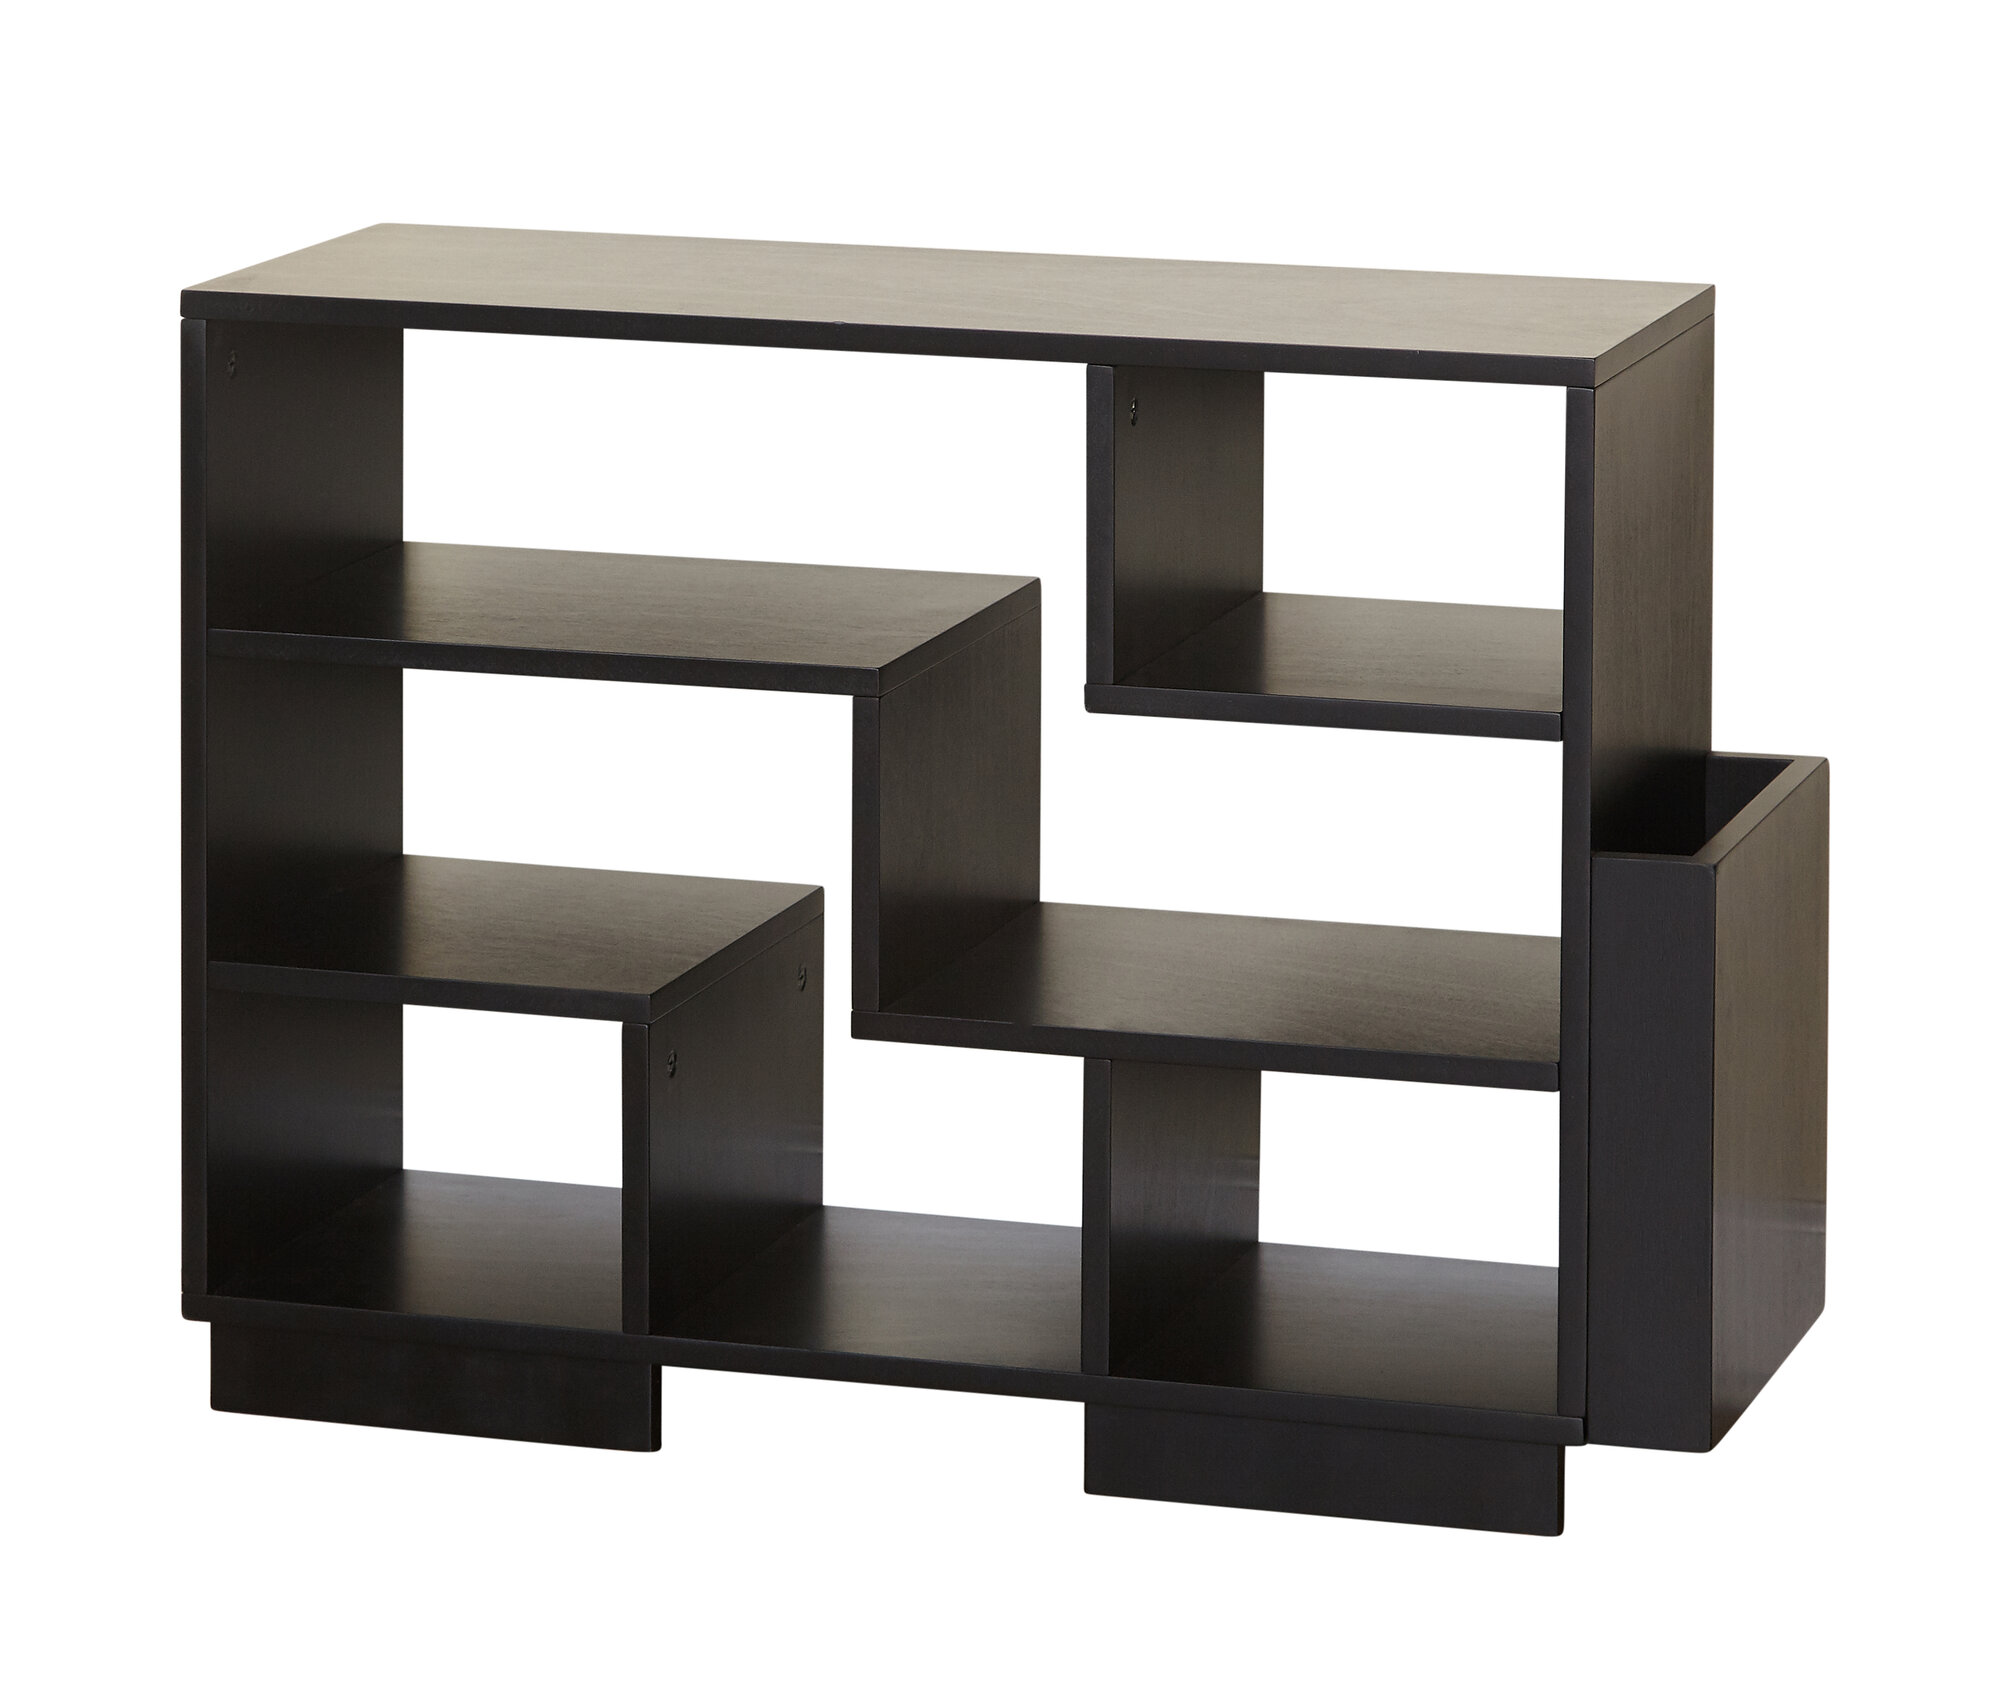 Details About George Oliver Beckley Geometric Bookcase